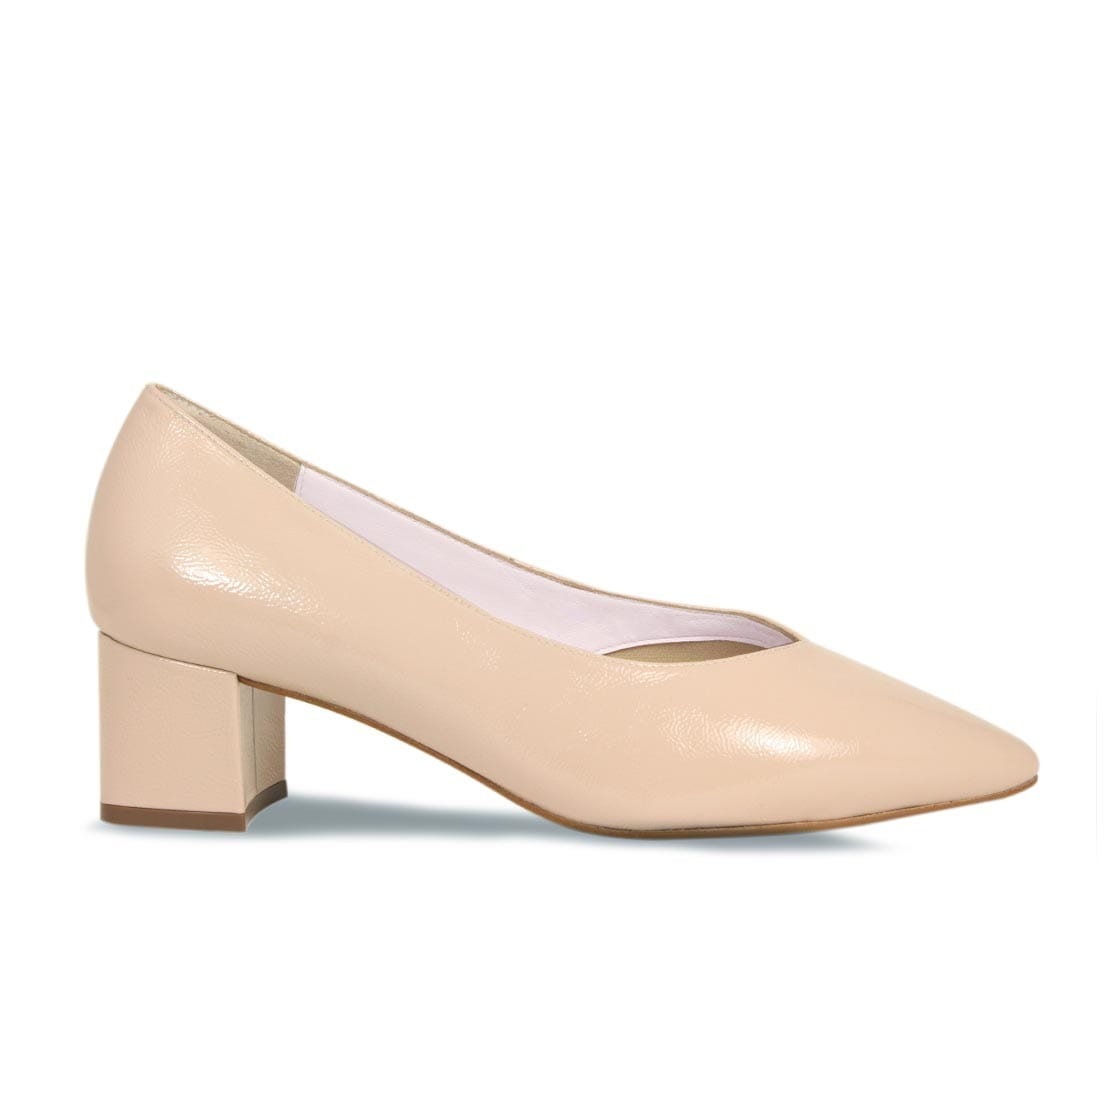 Nude Patent Leather Block Heeled Pumps